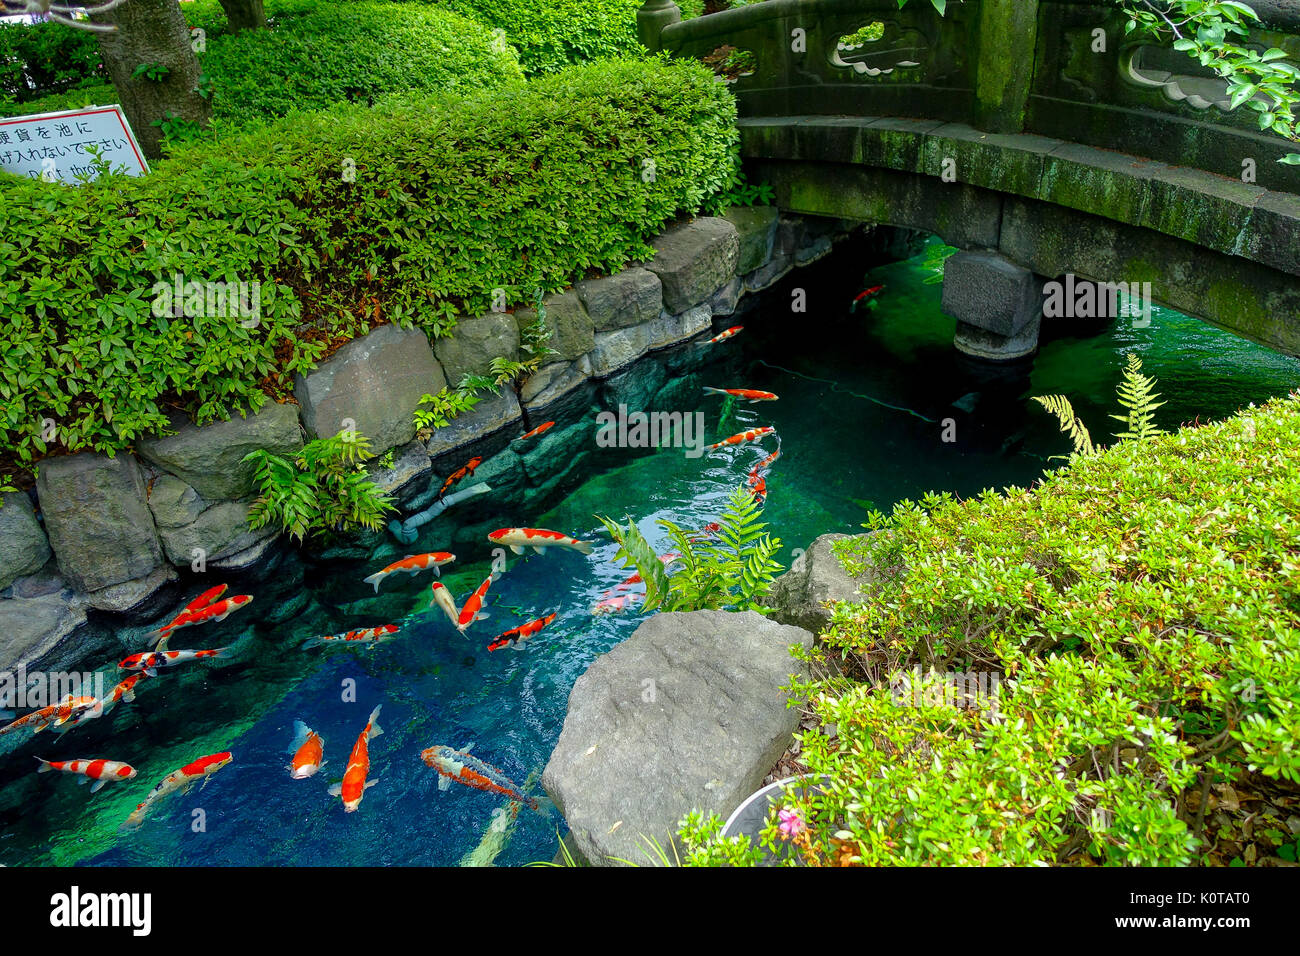 big fish small pond stock photos big fish small pond